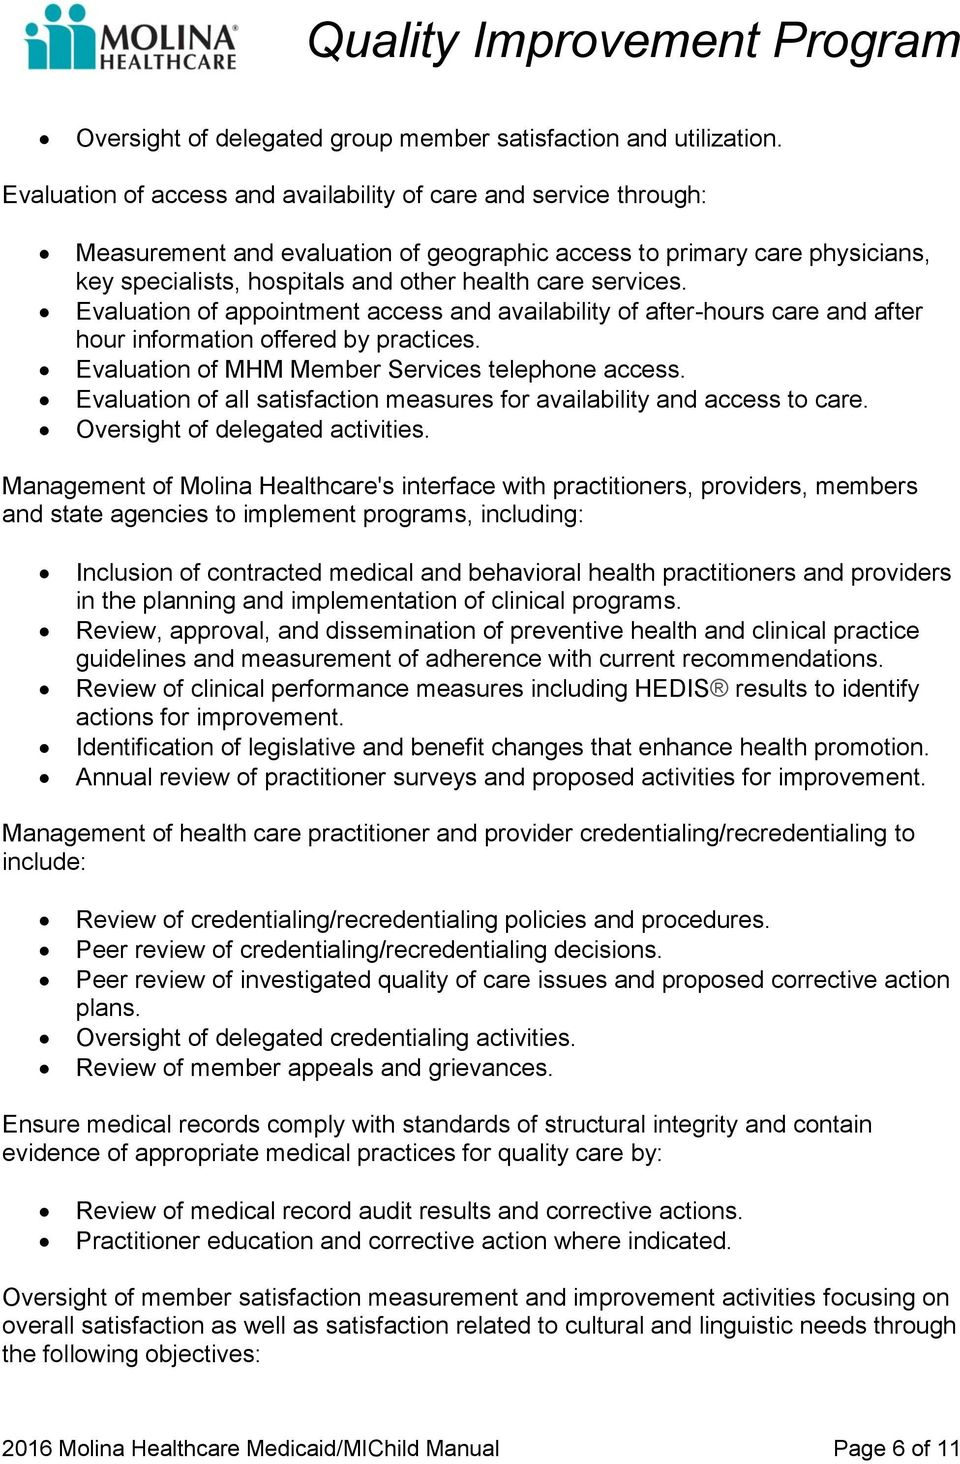 services. Evaluation of appointment access and availability of after-hours care and after hour information offered by practices. Evaluation of MHM Member Services telephone access.